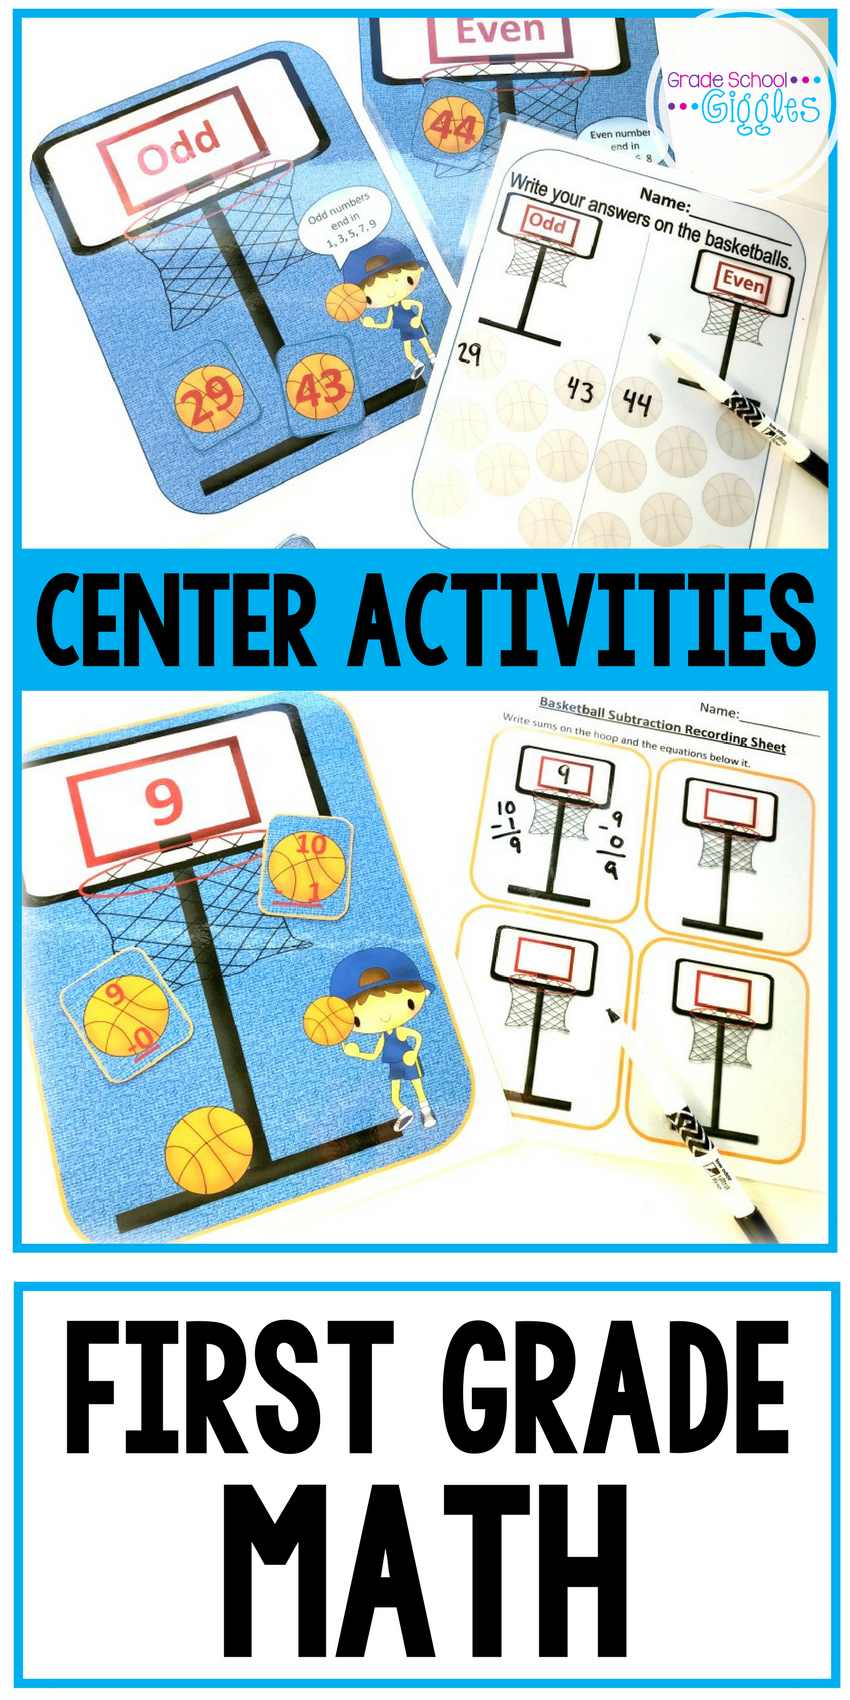 Addition and Subtraction Centers: Basketball Math | Center ...